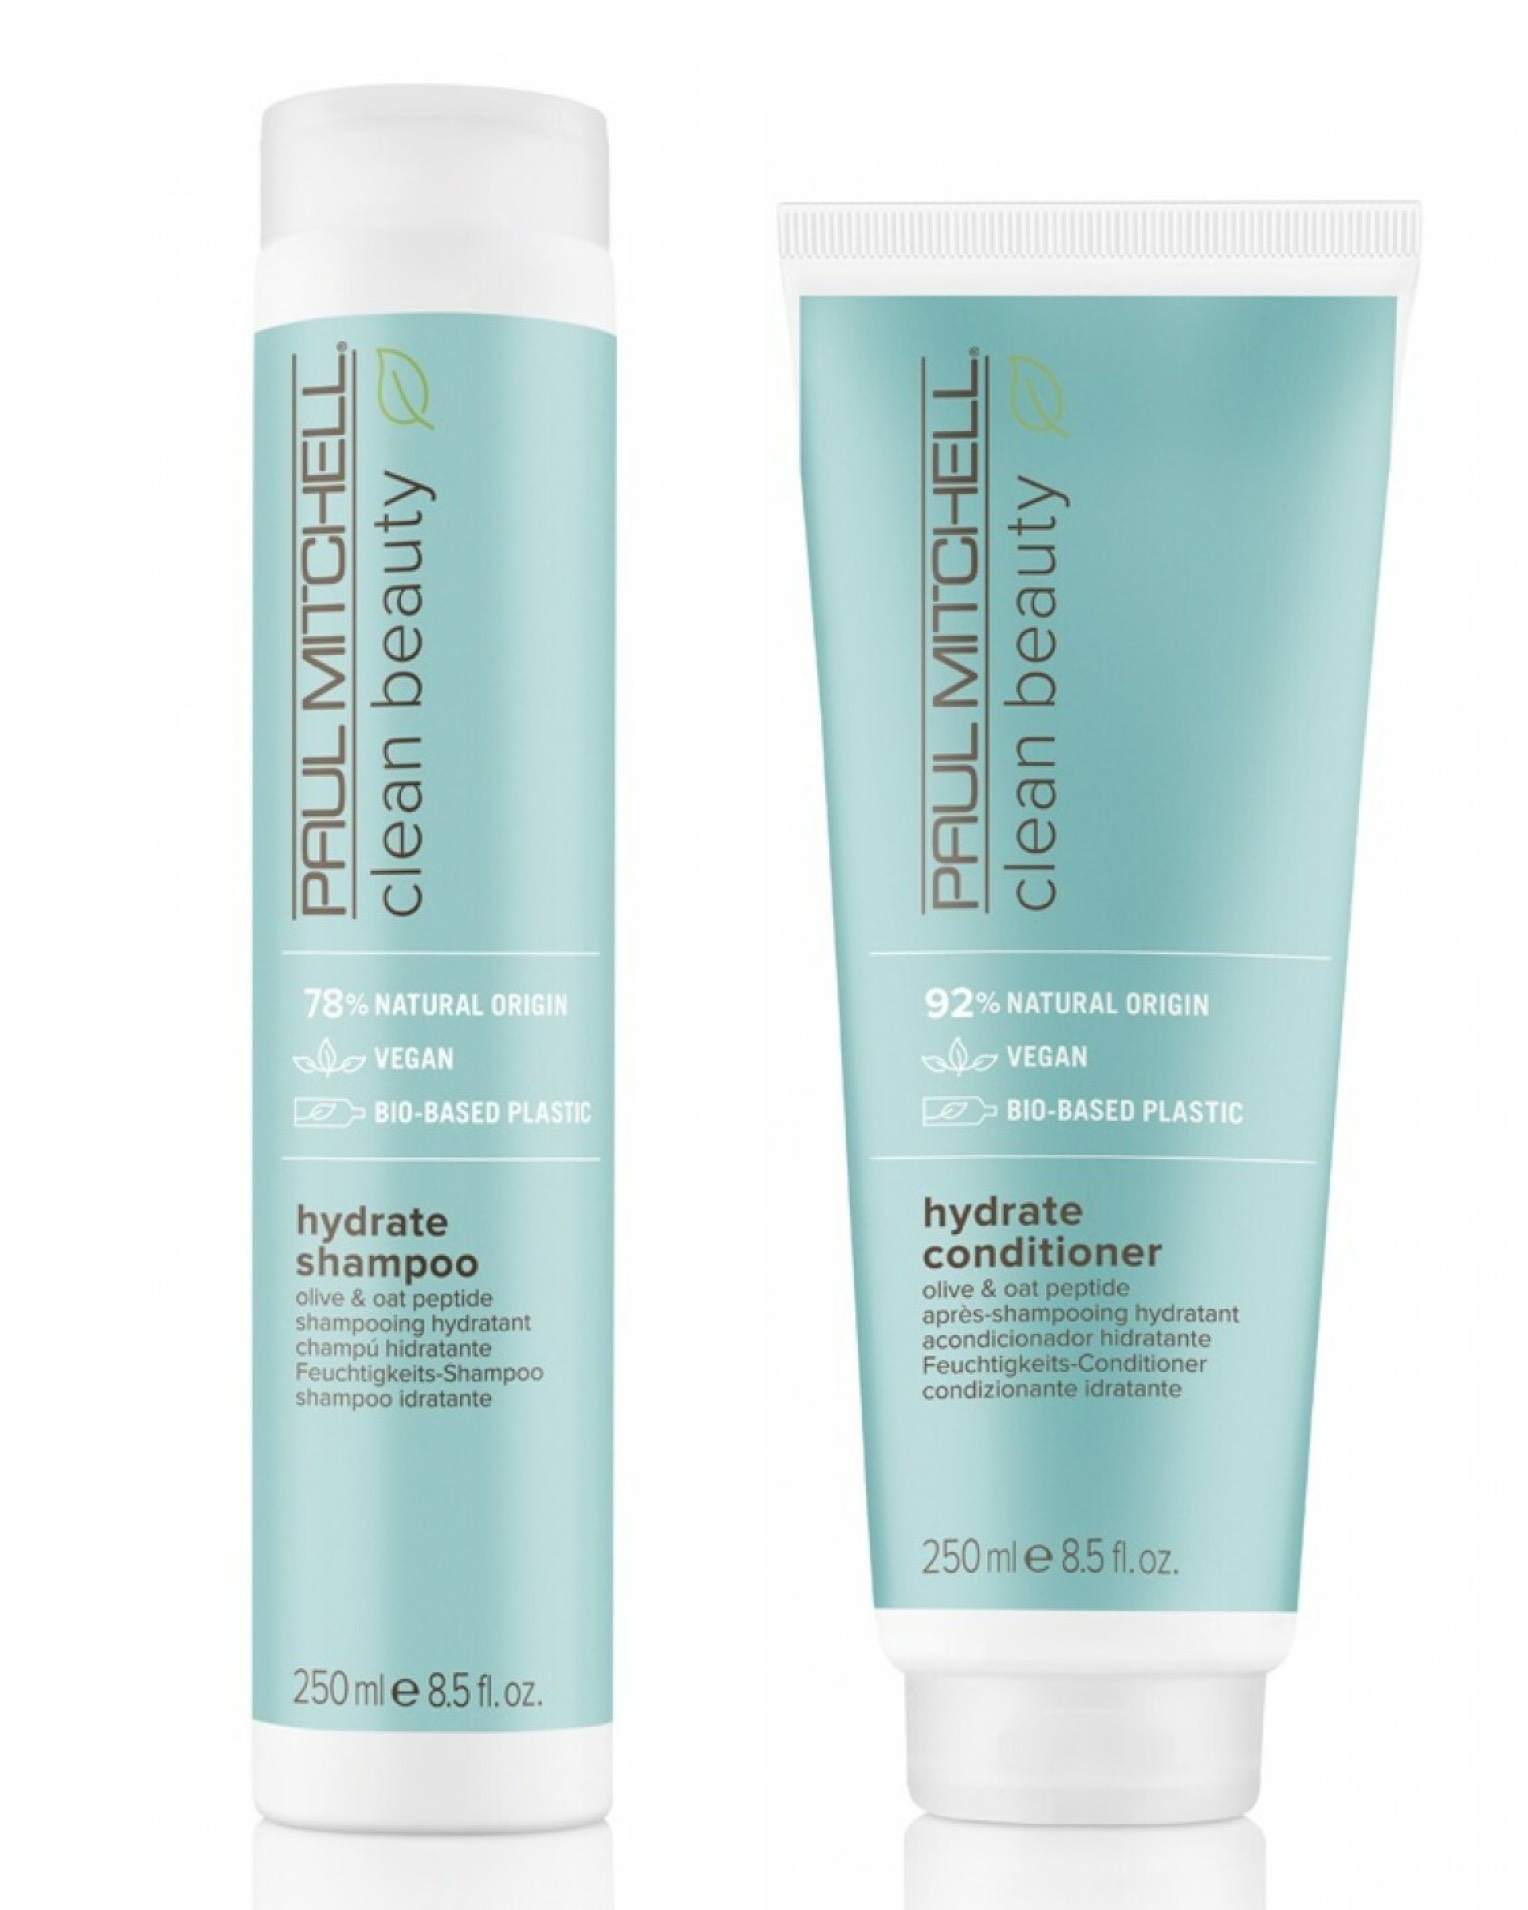 Paul Mitchell Clean Beauty Hydrate Duo - Hydrate Shampoo 250ml + Conditioner 250ml